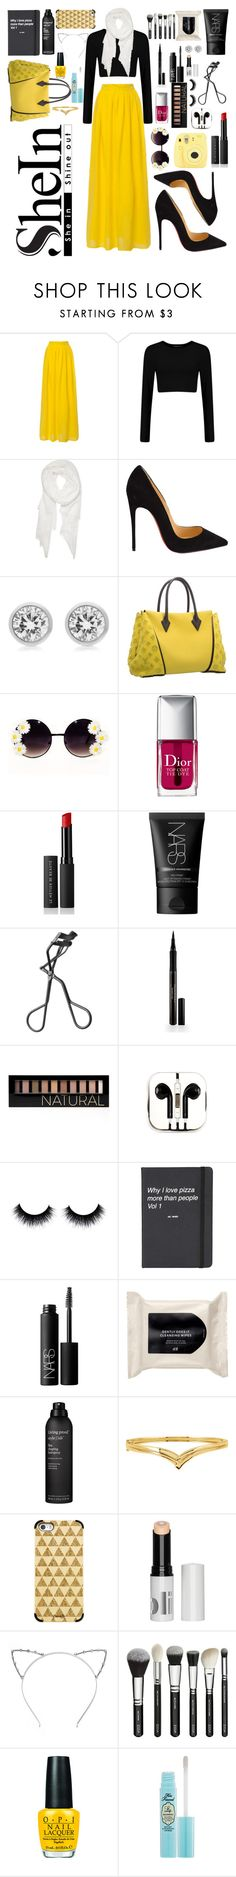 """Untitled #63"" by jmatz on Polyvore featuring Calvin Klein, Christian Louboutin, Michael Kors, Louis Vuitton, Christian Dior, Le Métier de Beauté, NARS Cosmetics, Elizabeth Arden, Forever 21 and PhunkeeTree"